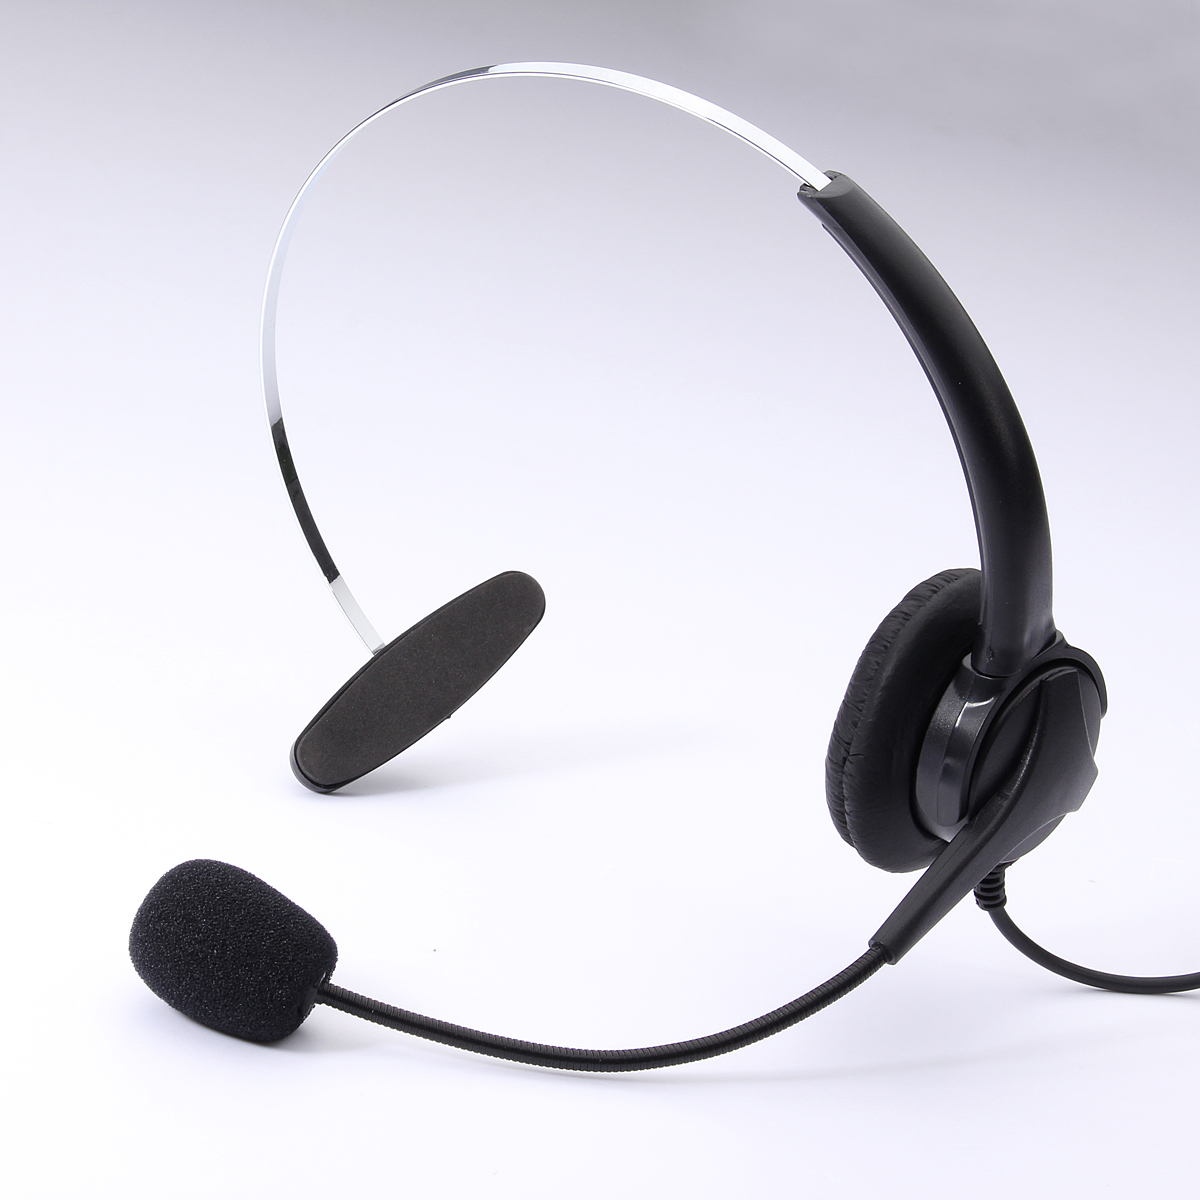 Telephone Headset Noise Cancelling Microphone RJ11 Headset